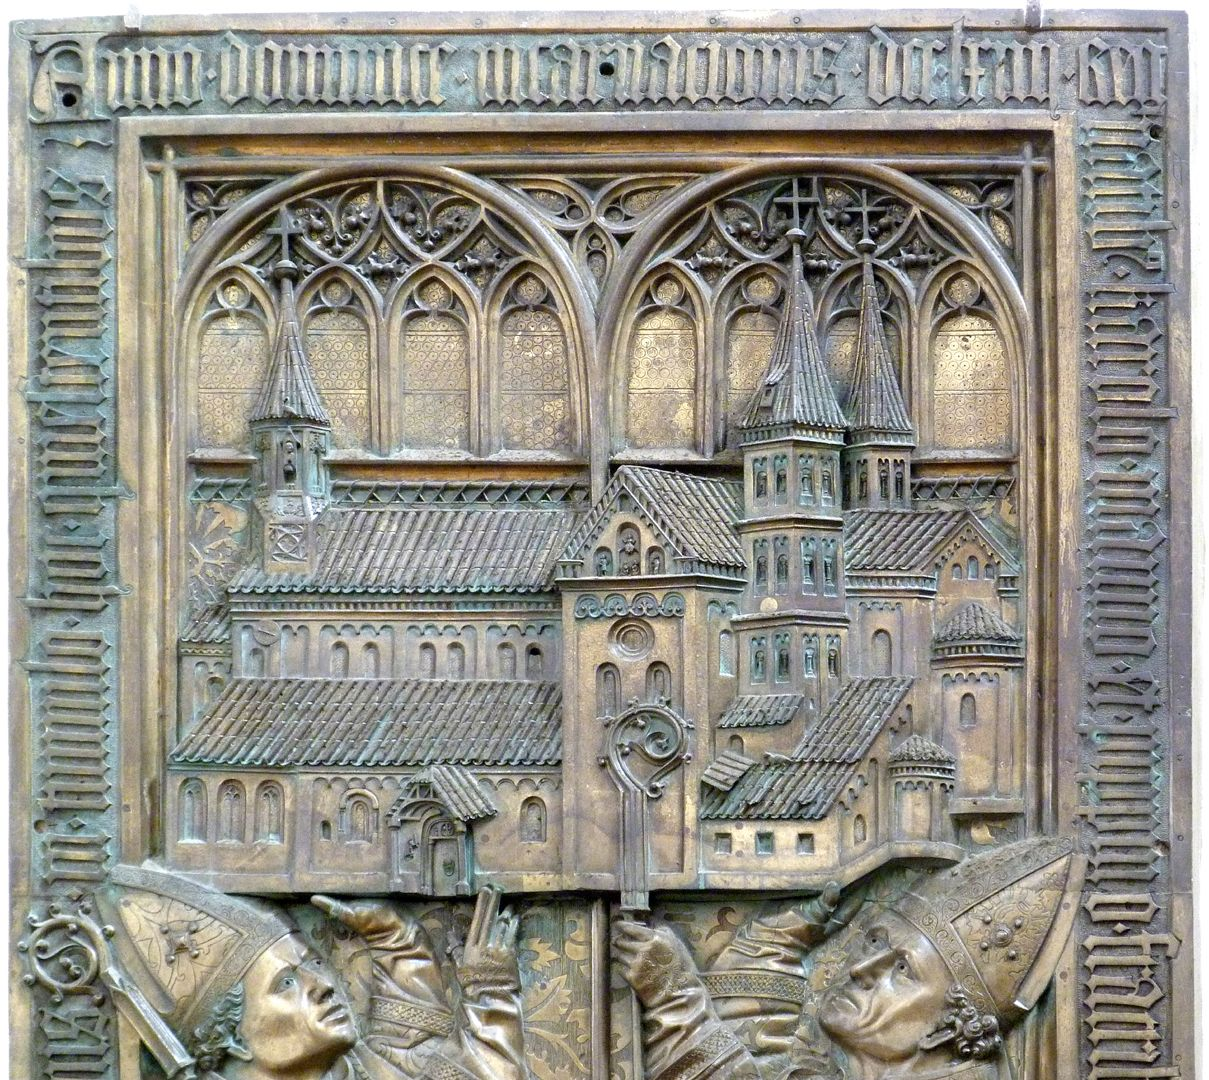 Memorial panel for Hariolf and Erlolf obere Platte mit Kirchenmodell